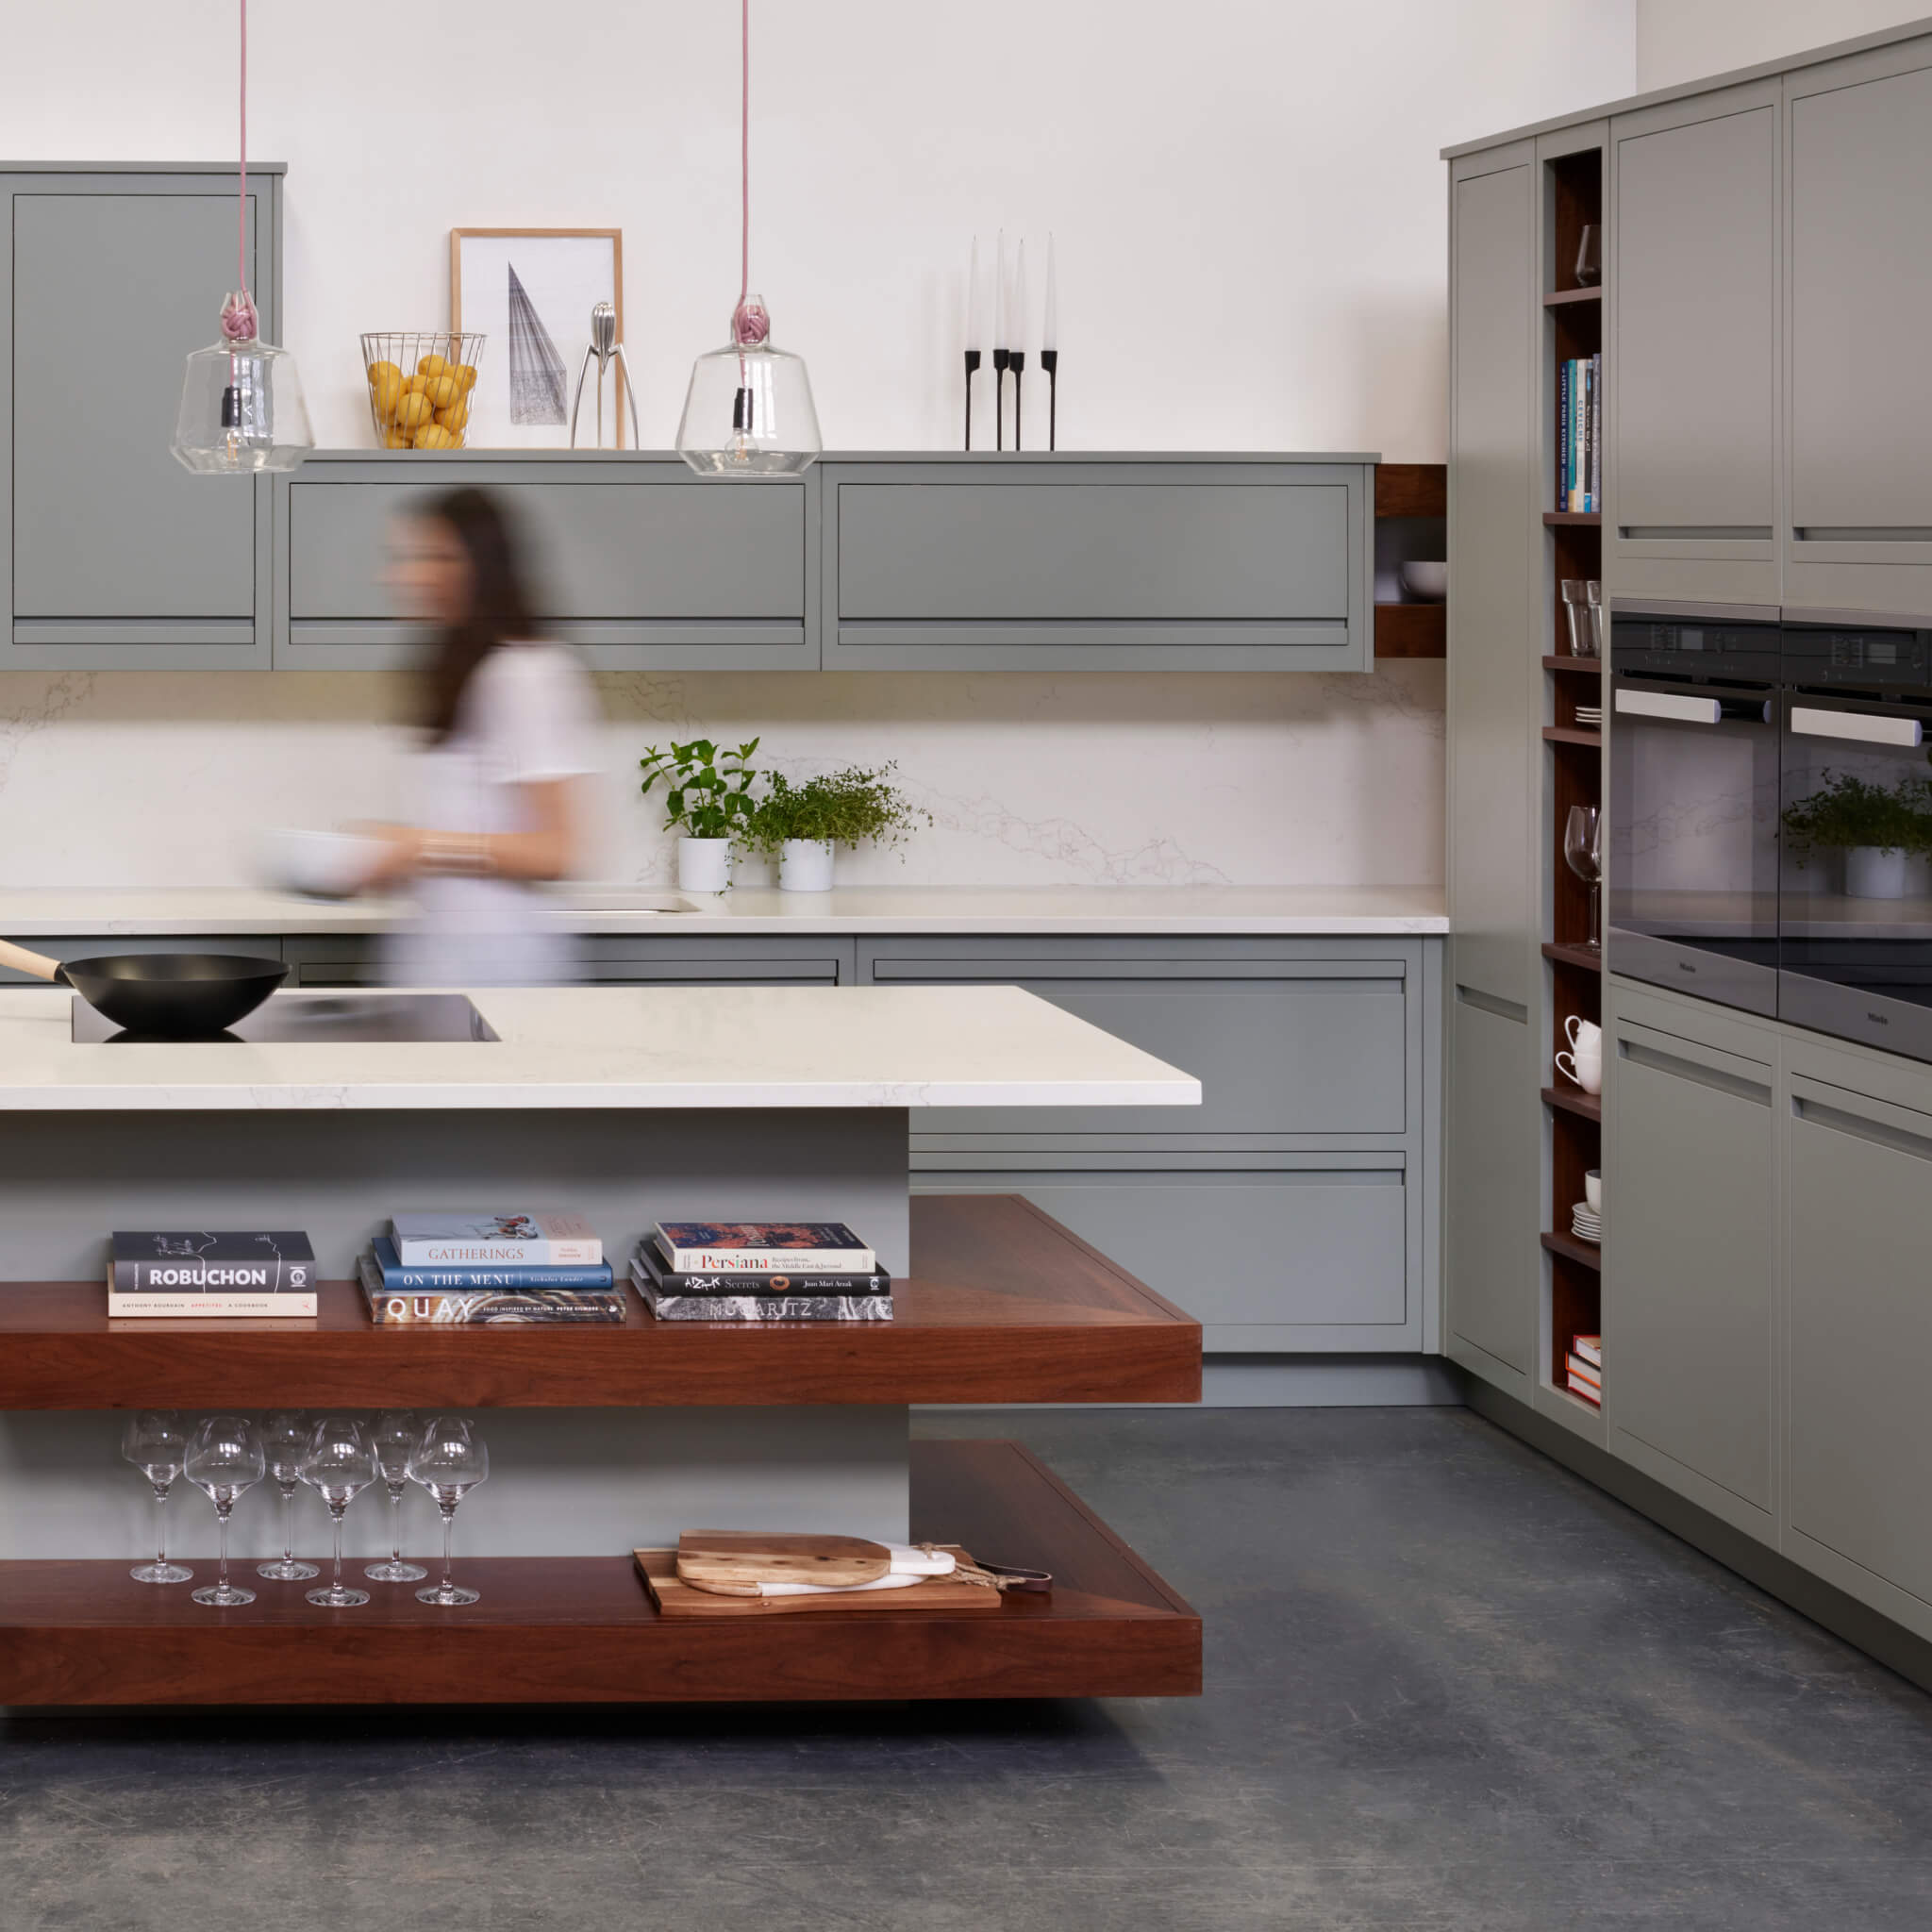 Introducing Linear Edge Our Handleless Kitchen Design